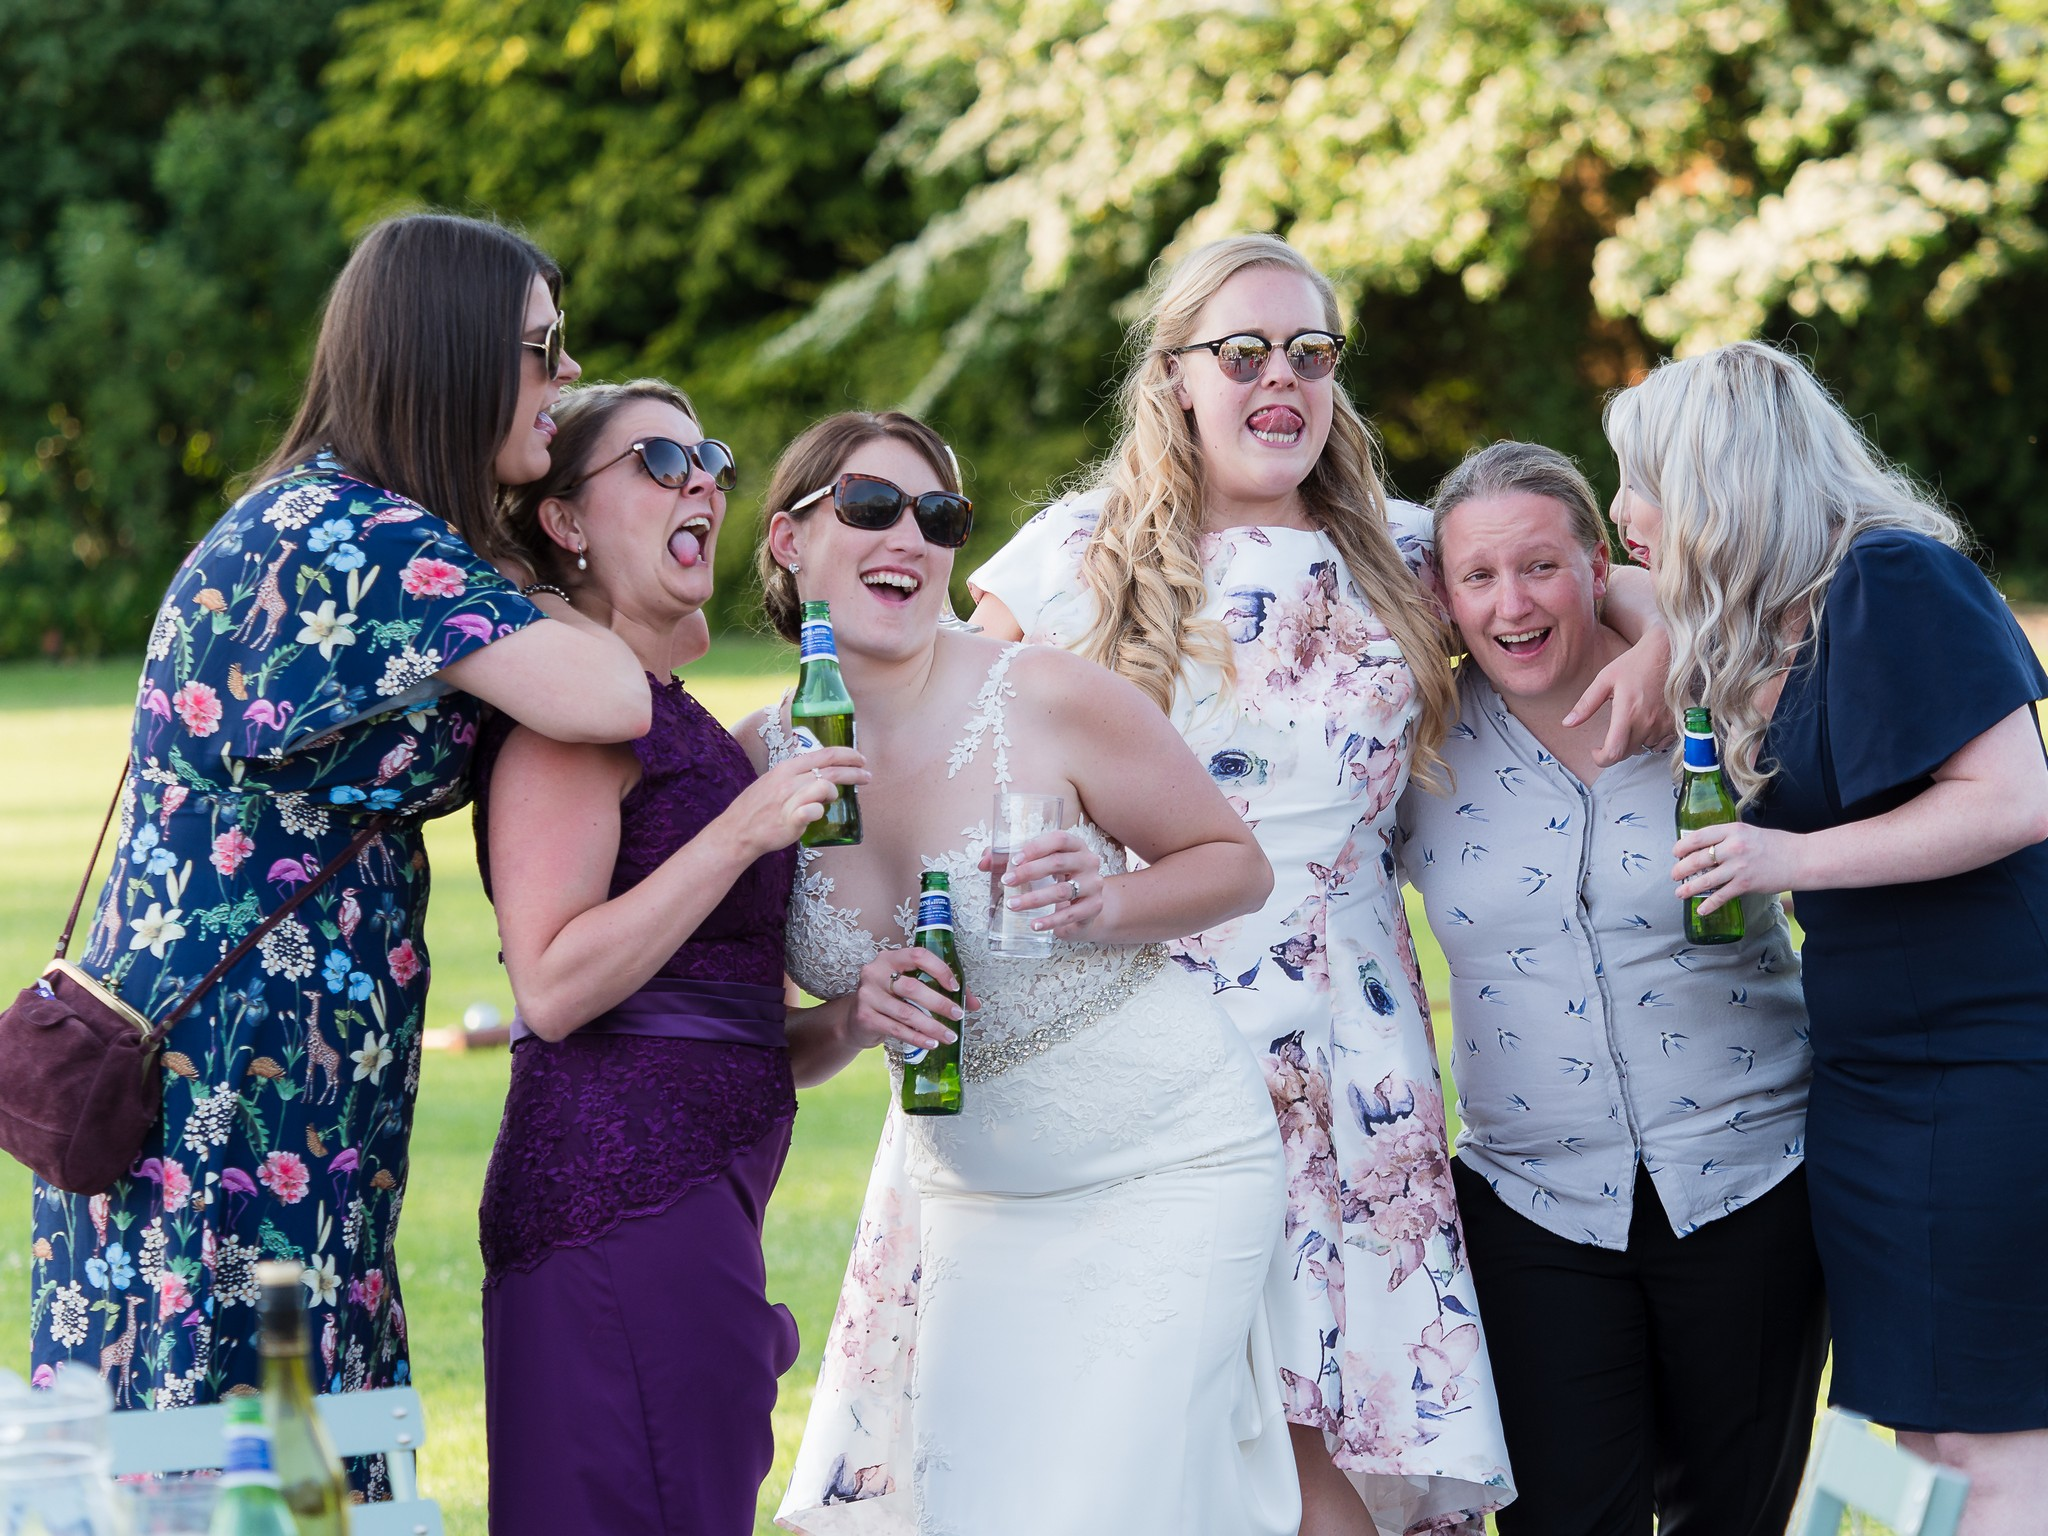 group of friends at a wedding